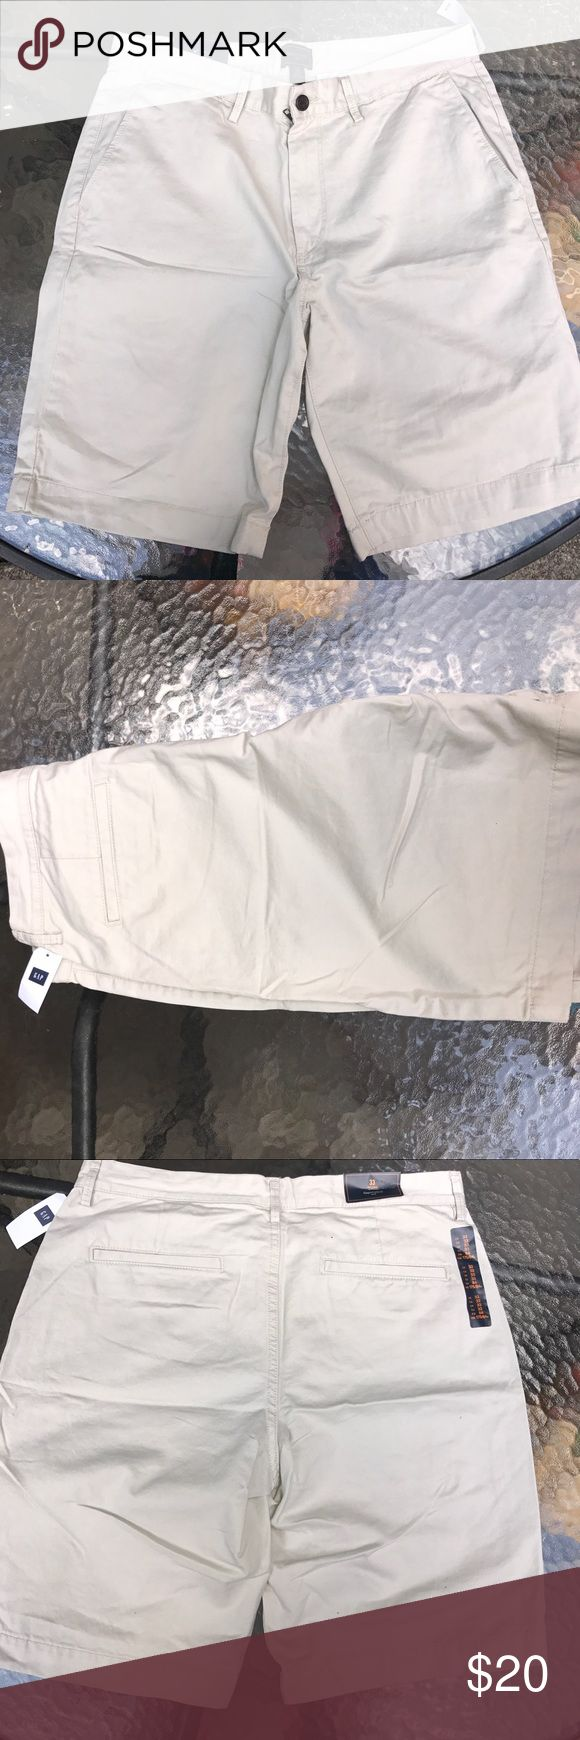 Men's Khaki Shorts Tan Khaki shorts size 33 waist perfect for the summer weather . Never worn GAP Shorts Flat Front